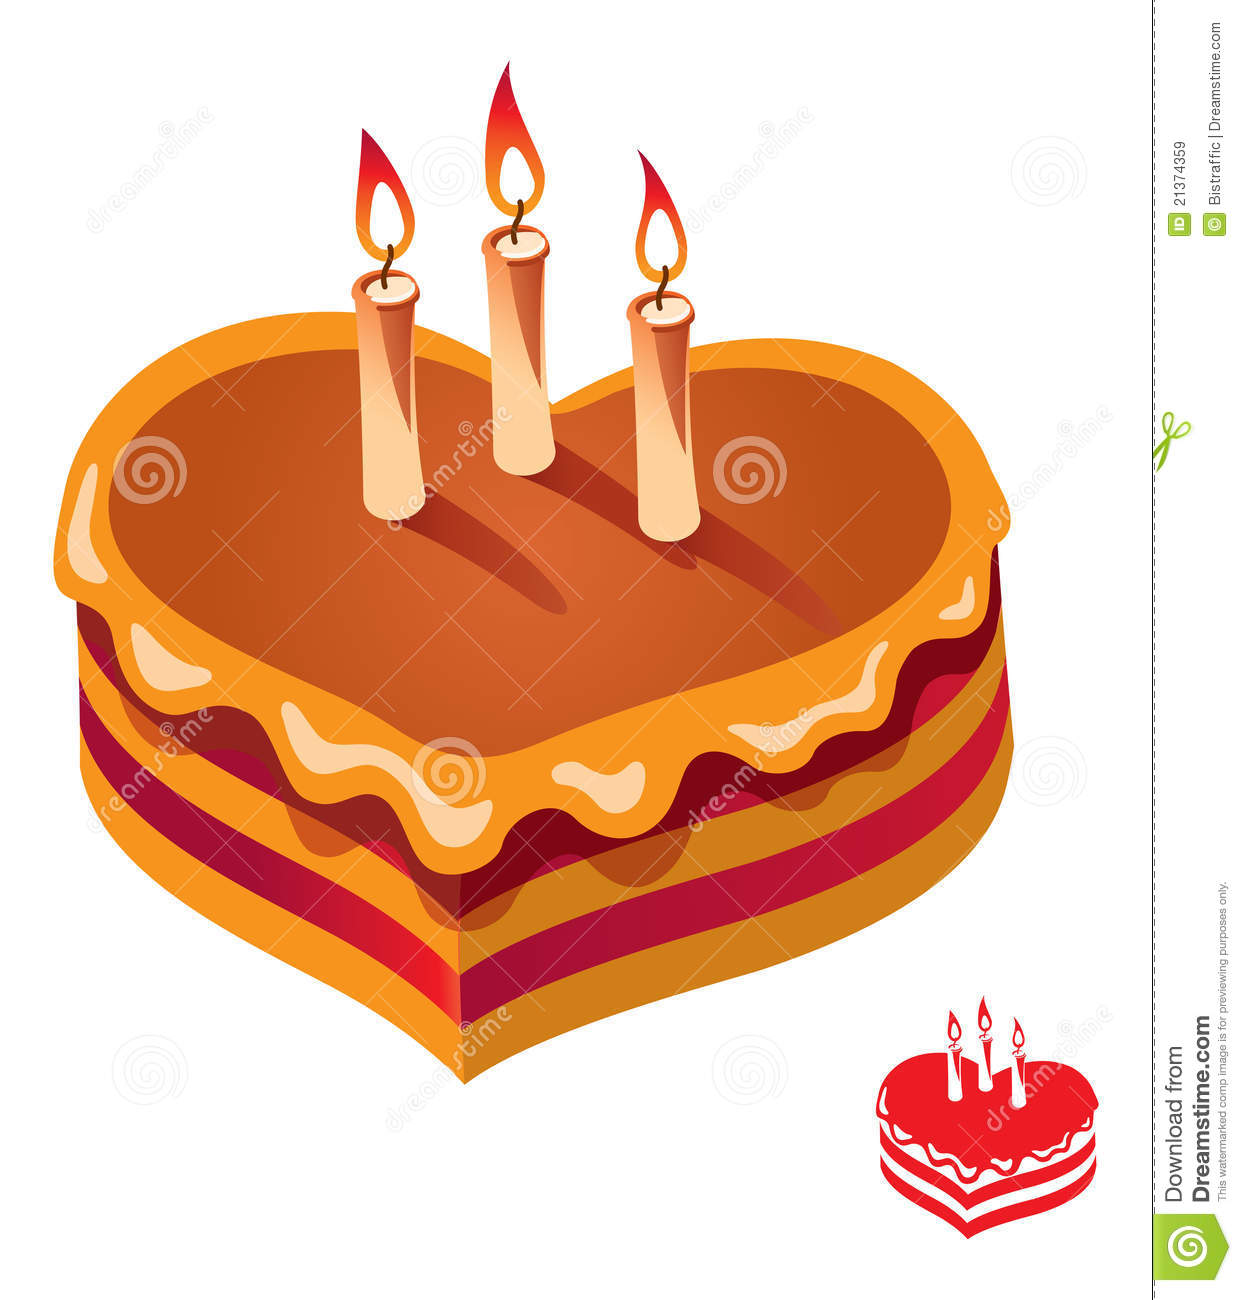 Cake Pictures Vector : Birthday Cake Vector Illustration Royalty Free Stock ...